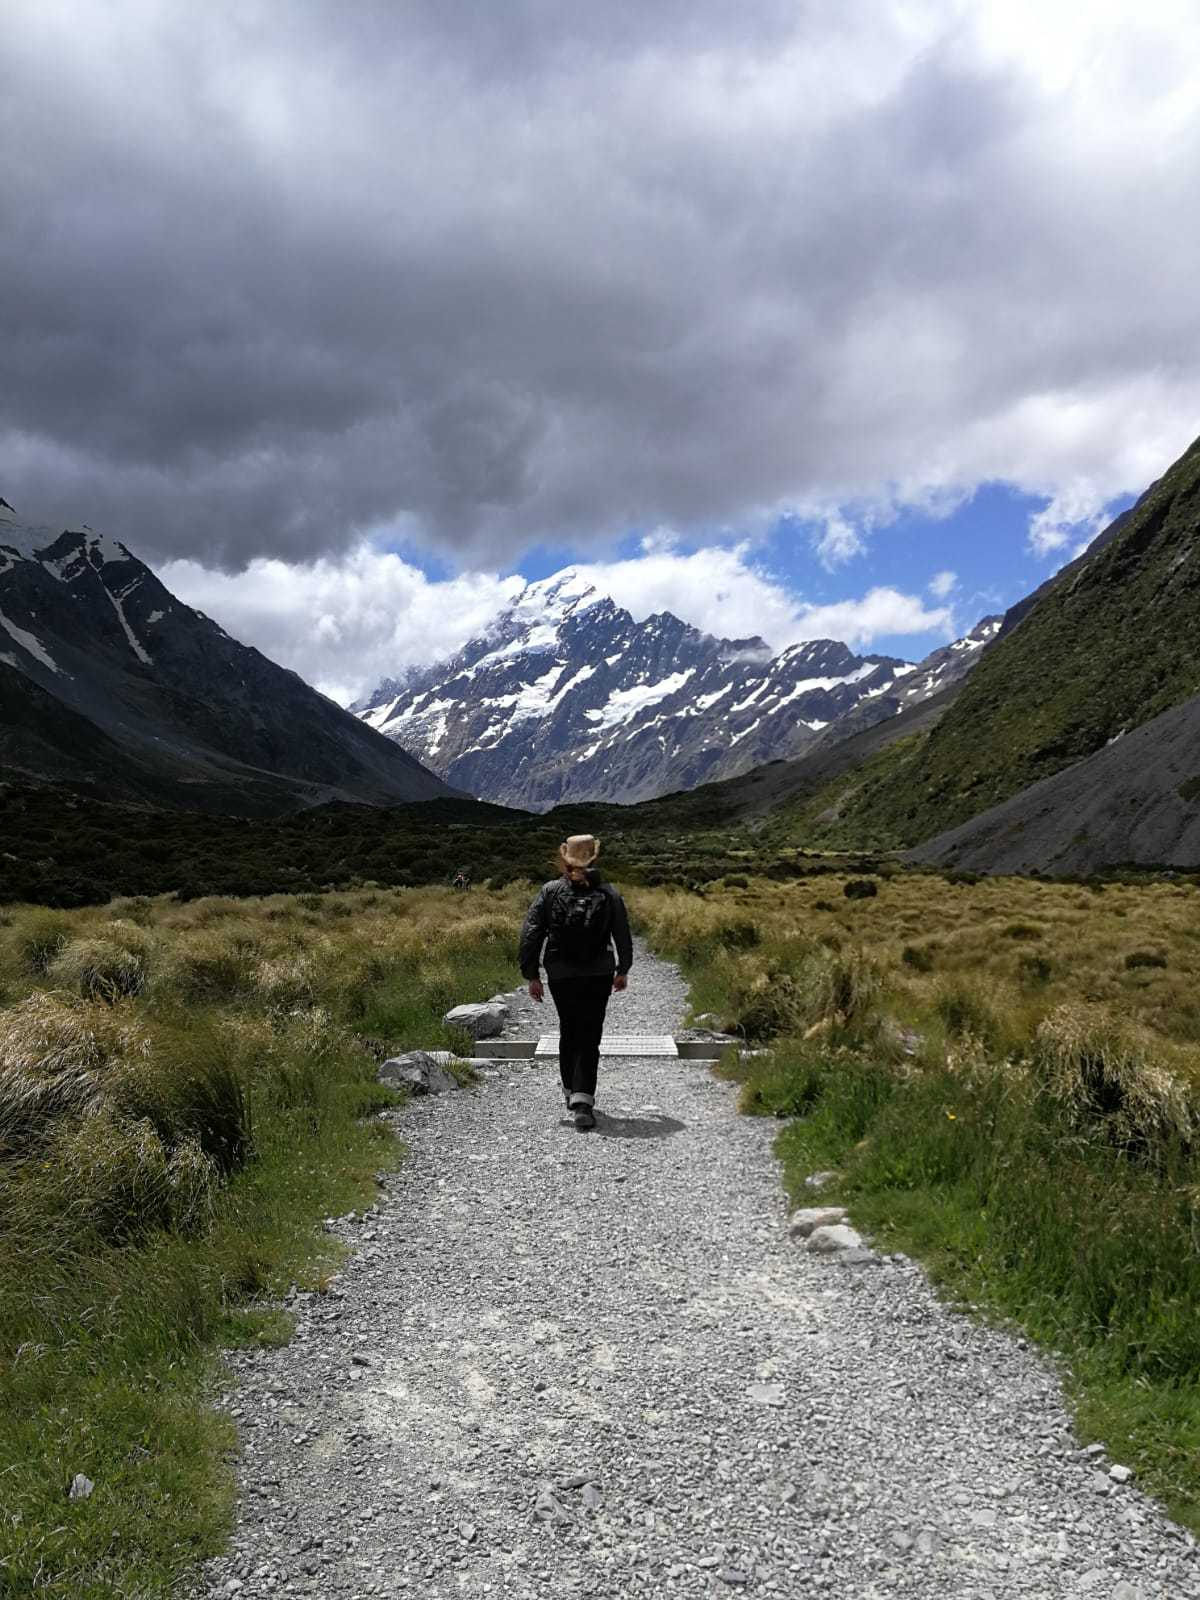 A man walking away from the camera along a stony path. In the distance some partially snow covered mountains and grass land.